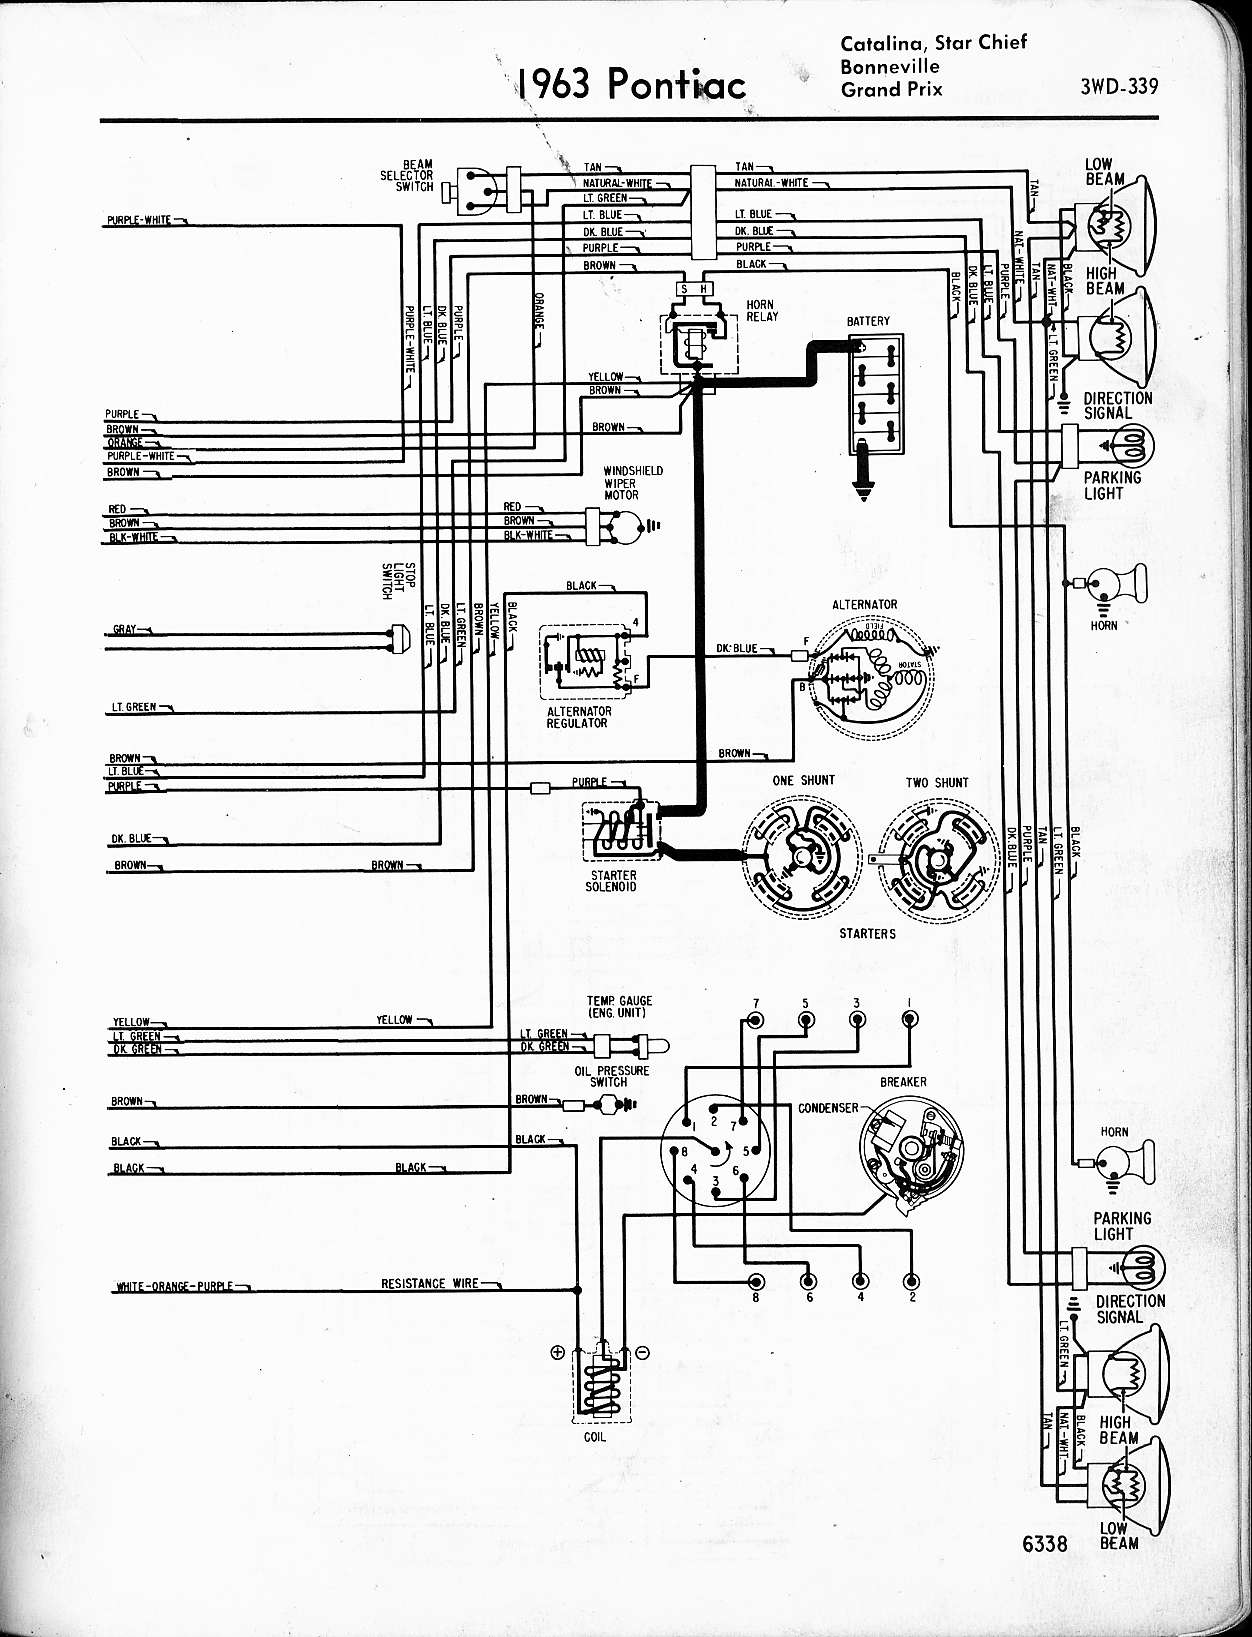 wallace racing wiring diagrams rh wallaceracing com 2003 Pontiac Bonneville SSE 1992 pontiac bonneville radio wiring diagram